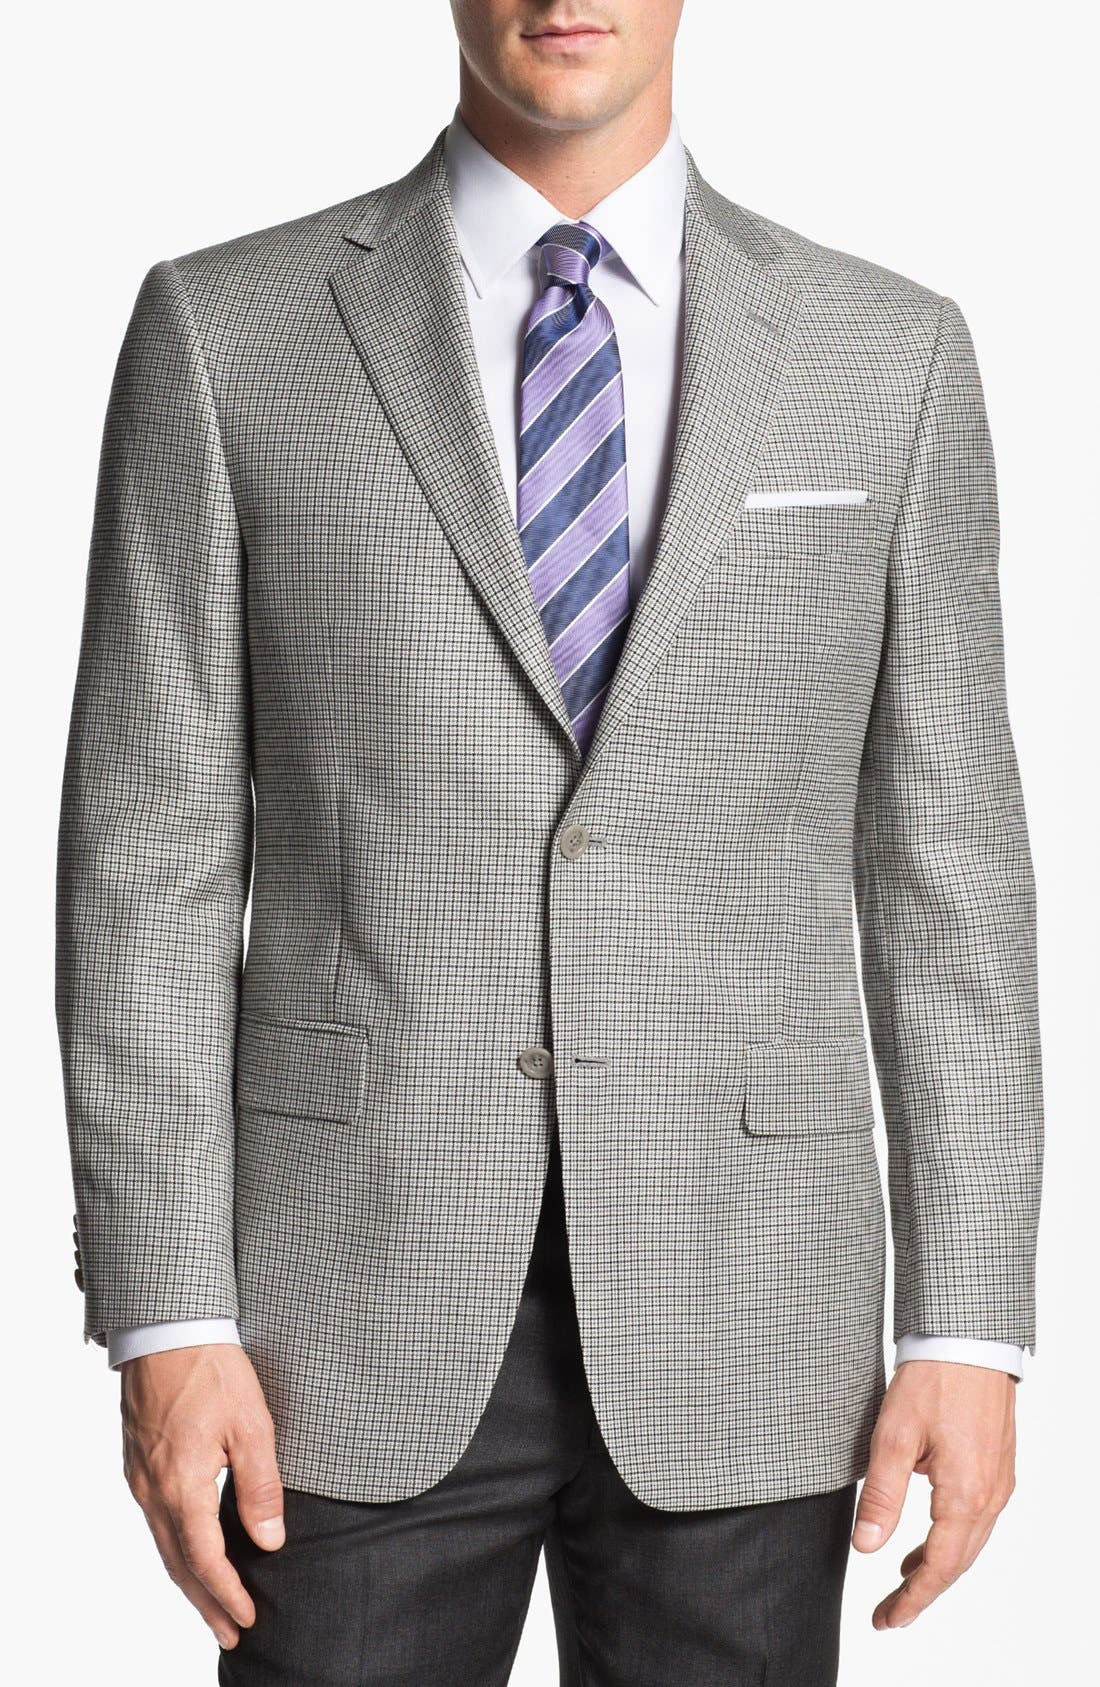 Alternate Image 1 Selected - Hart Schaffner Marx Check Sportcoat